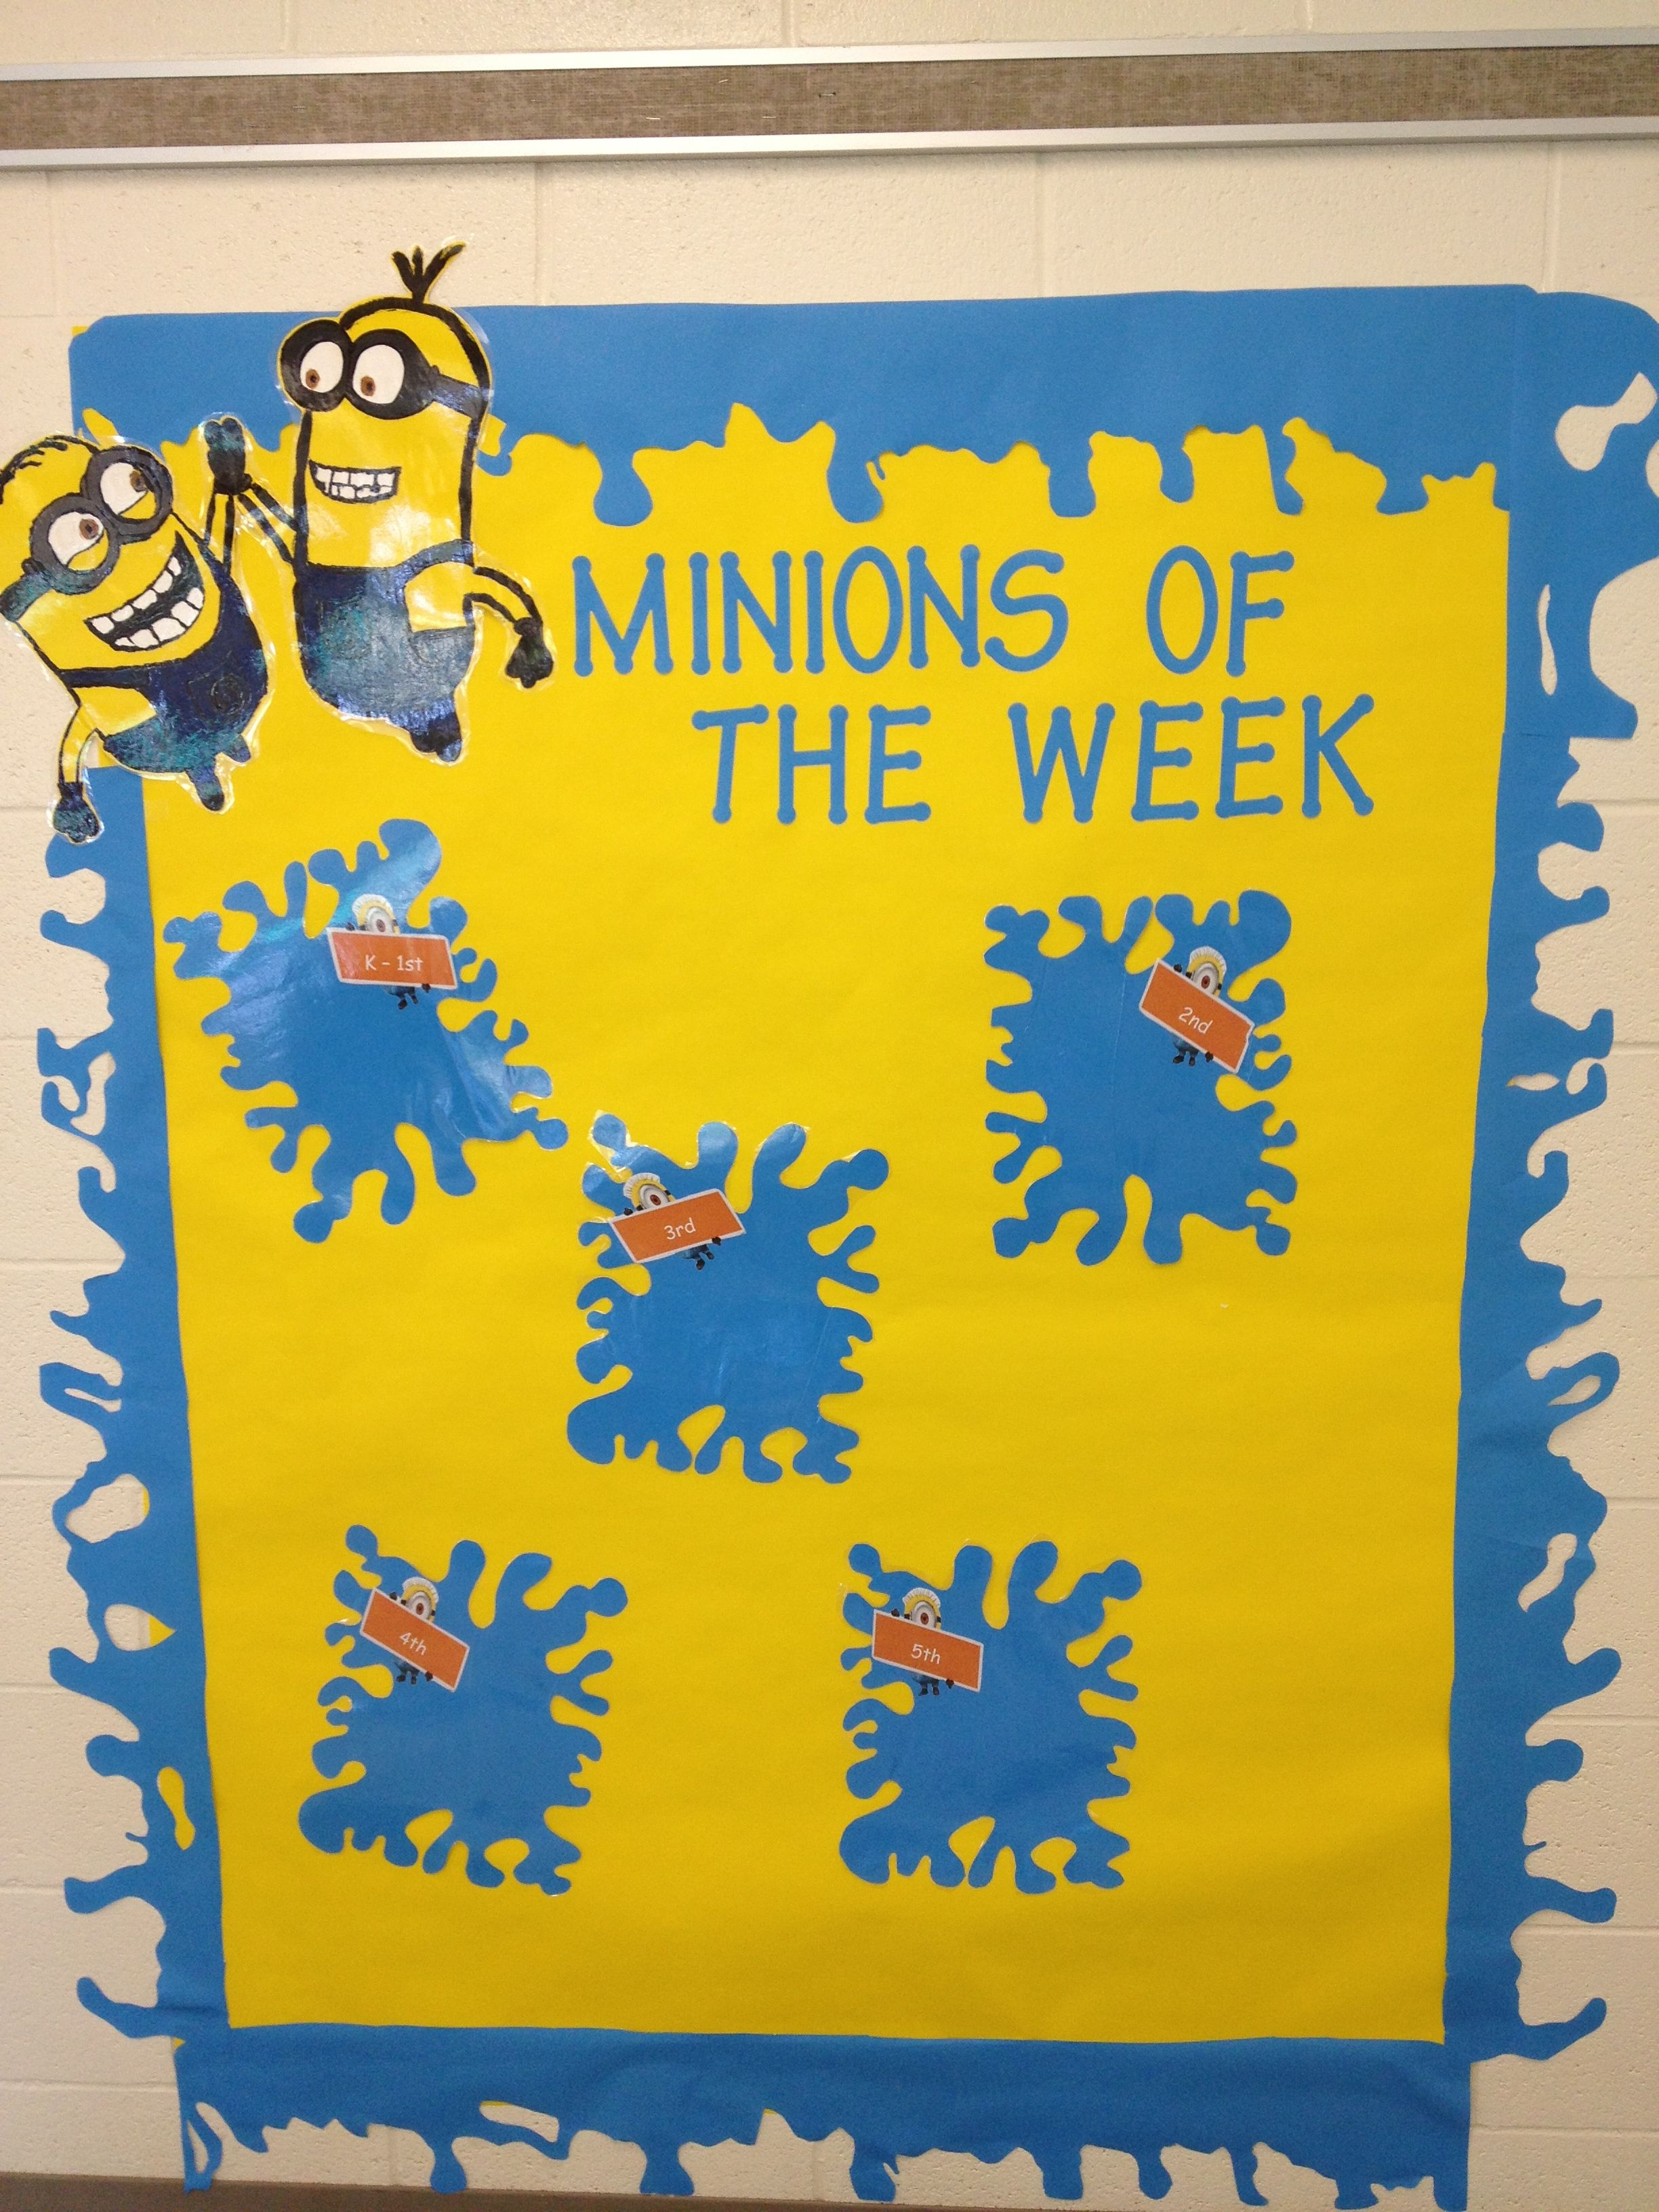 Students Of The Week For Latchkey Minions